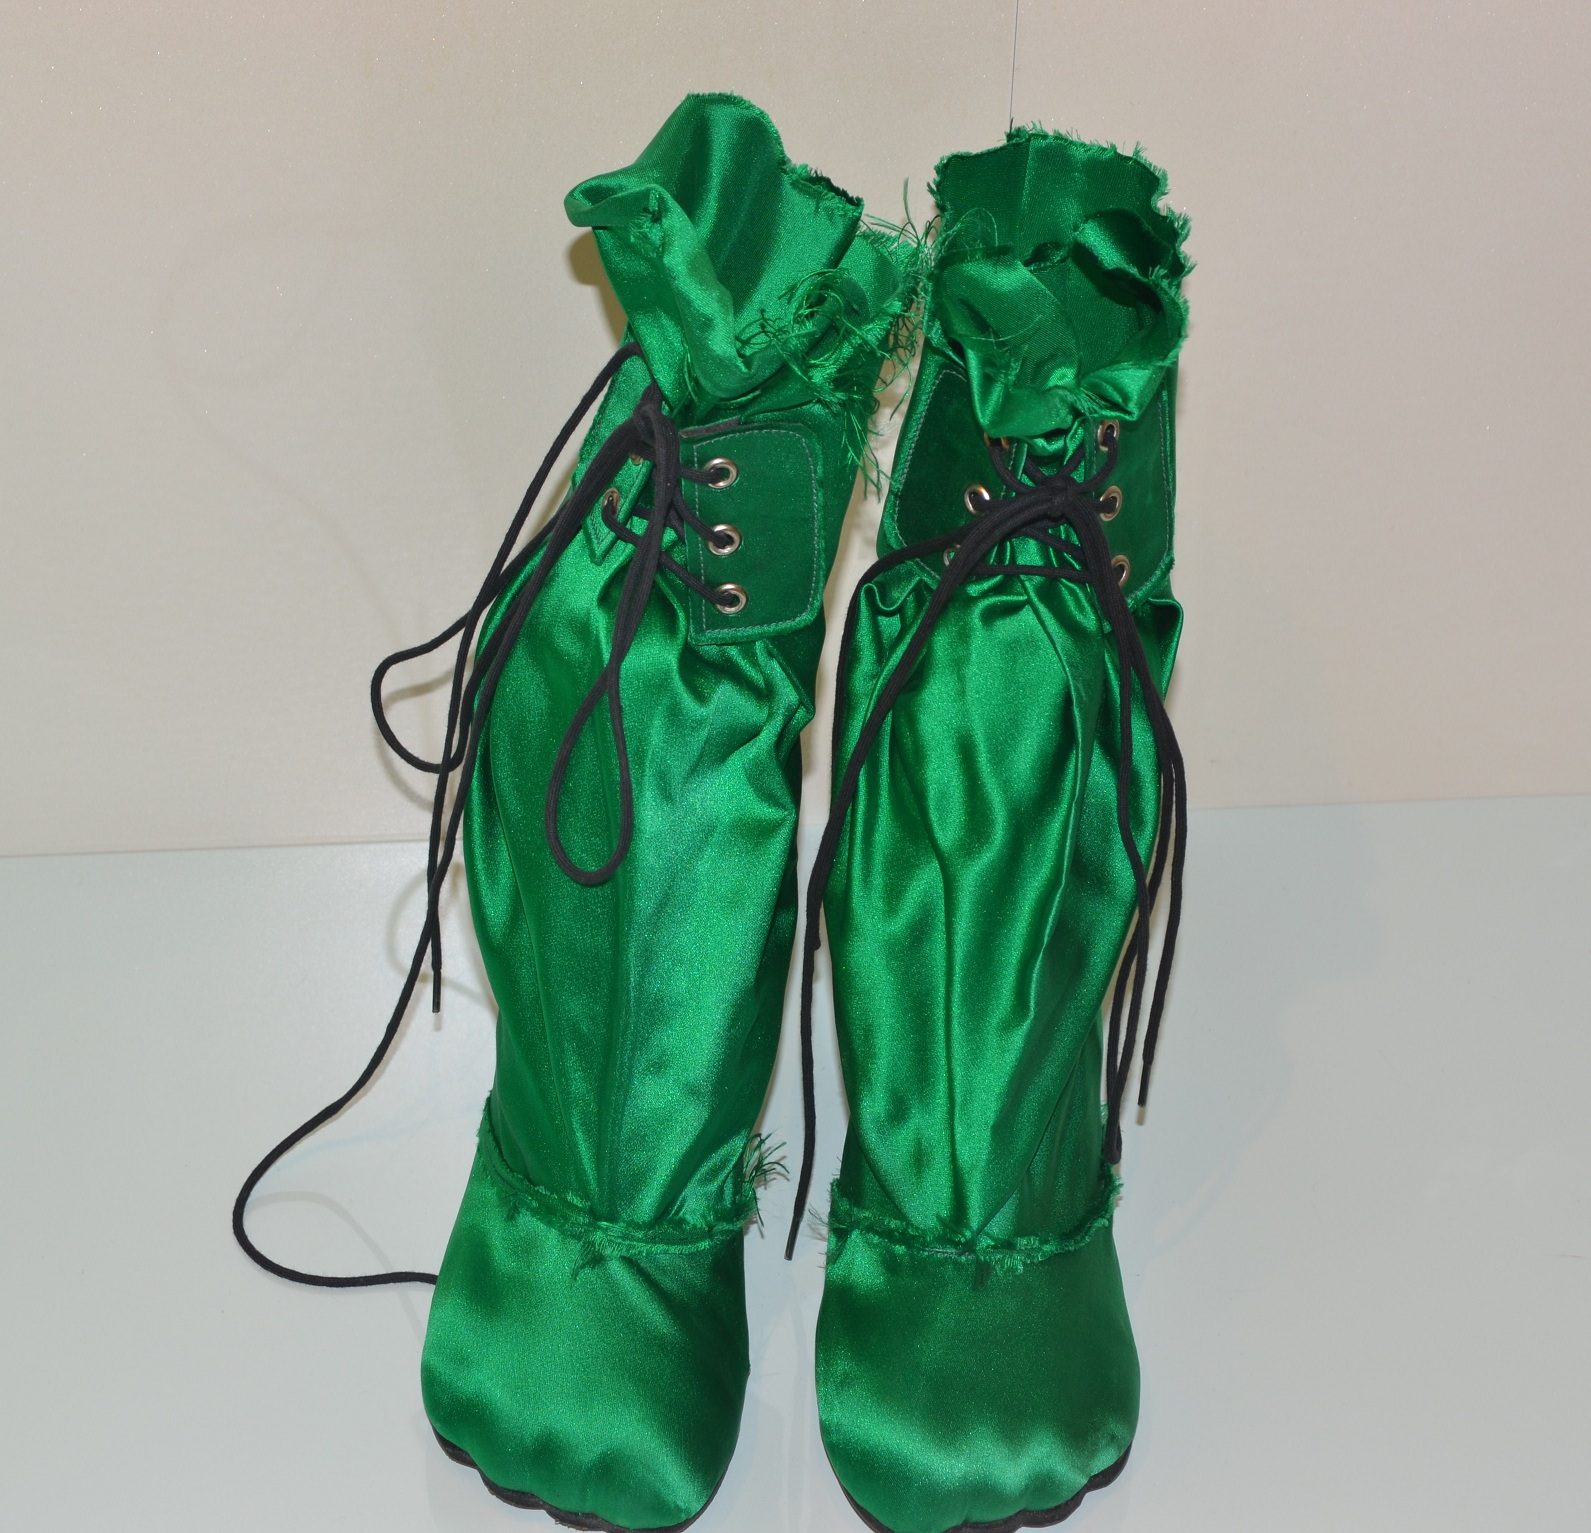 Venus En Me: A Personal Collection of Vivienne Westwood Shoes ...